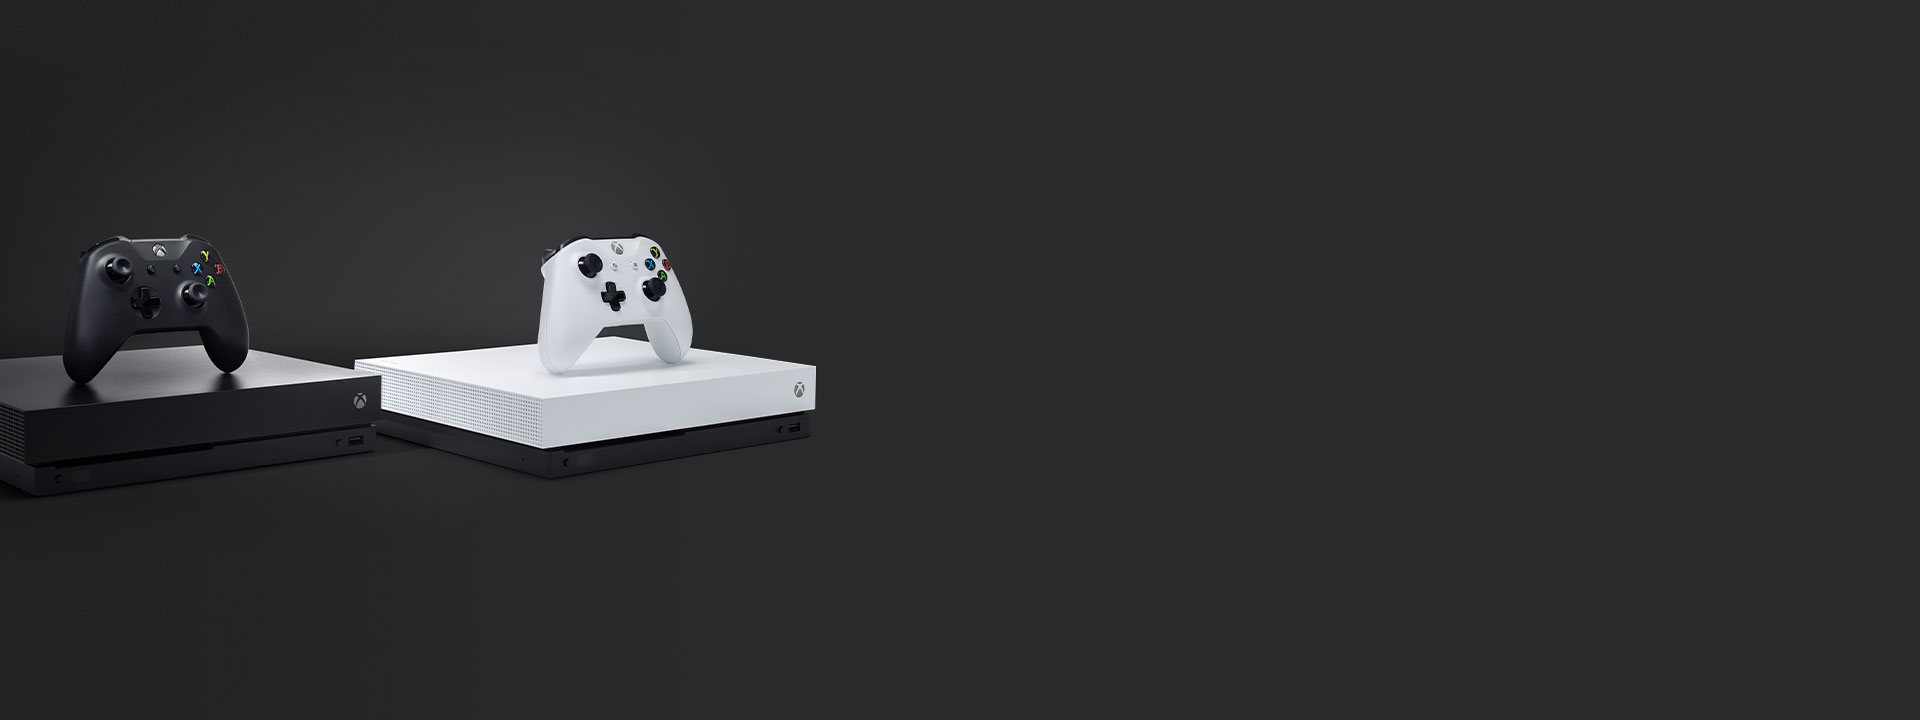 Xbox One X and Xbox One X Robot White Special Edition consoles on a dark grey background